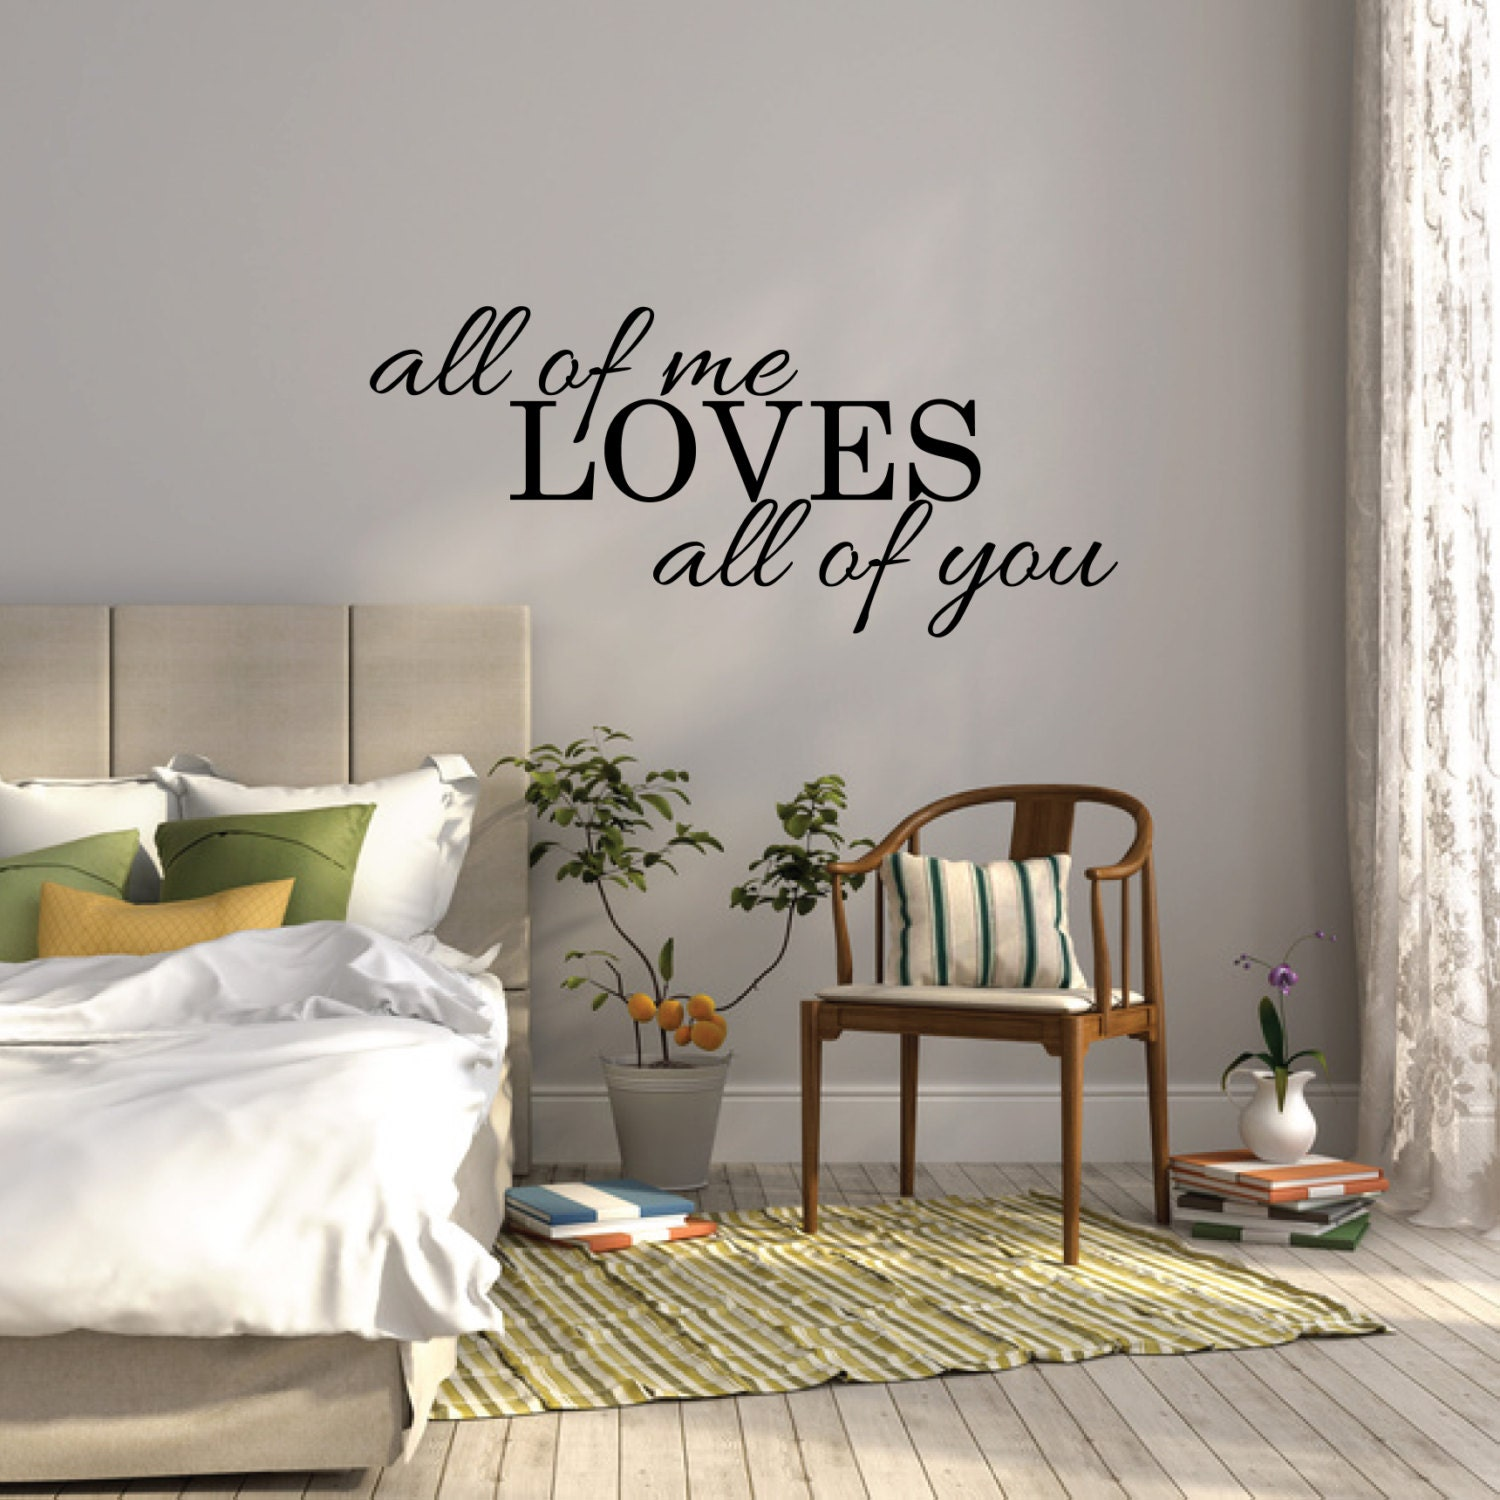 All of me loves all of you wall sticker bedroom wall decal for Mural art designs for bedroom